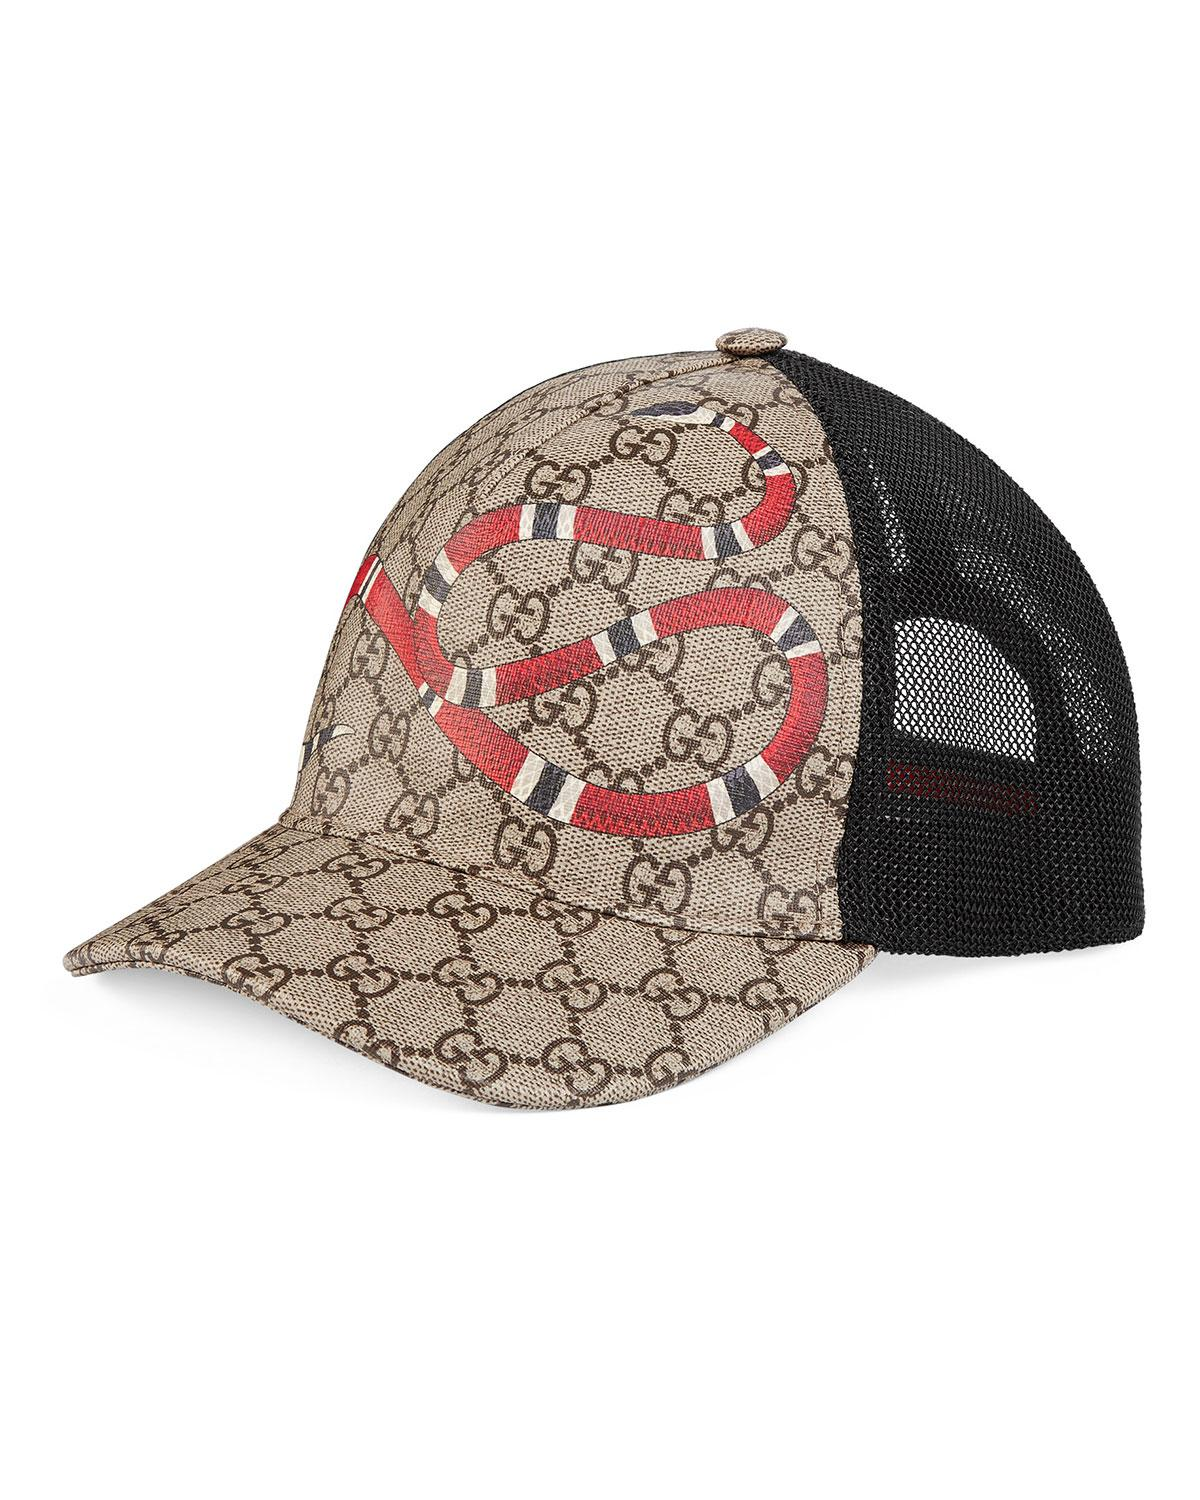 3b44dccf359 Lyst - Gucci Snake-print GG Supreme Baseball Hat Brown in Brown for ...